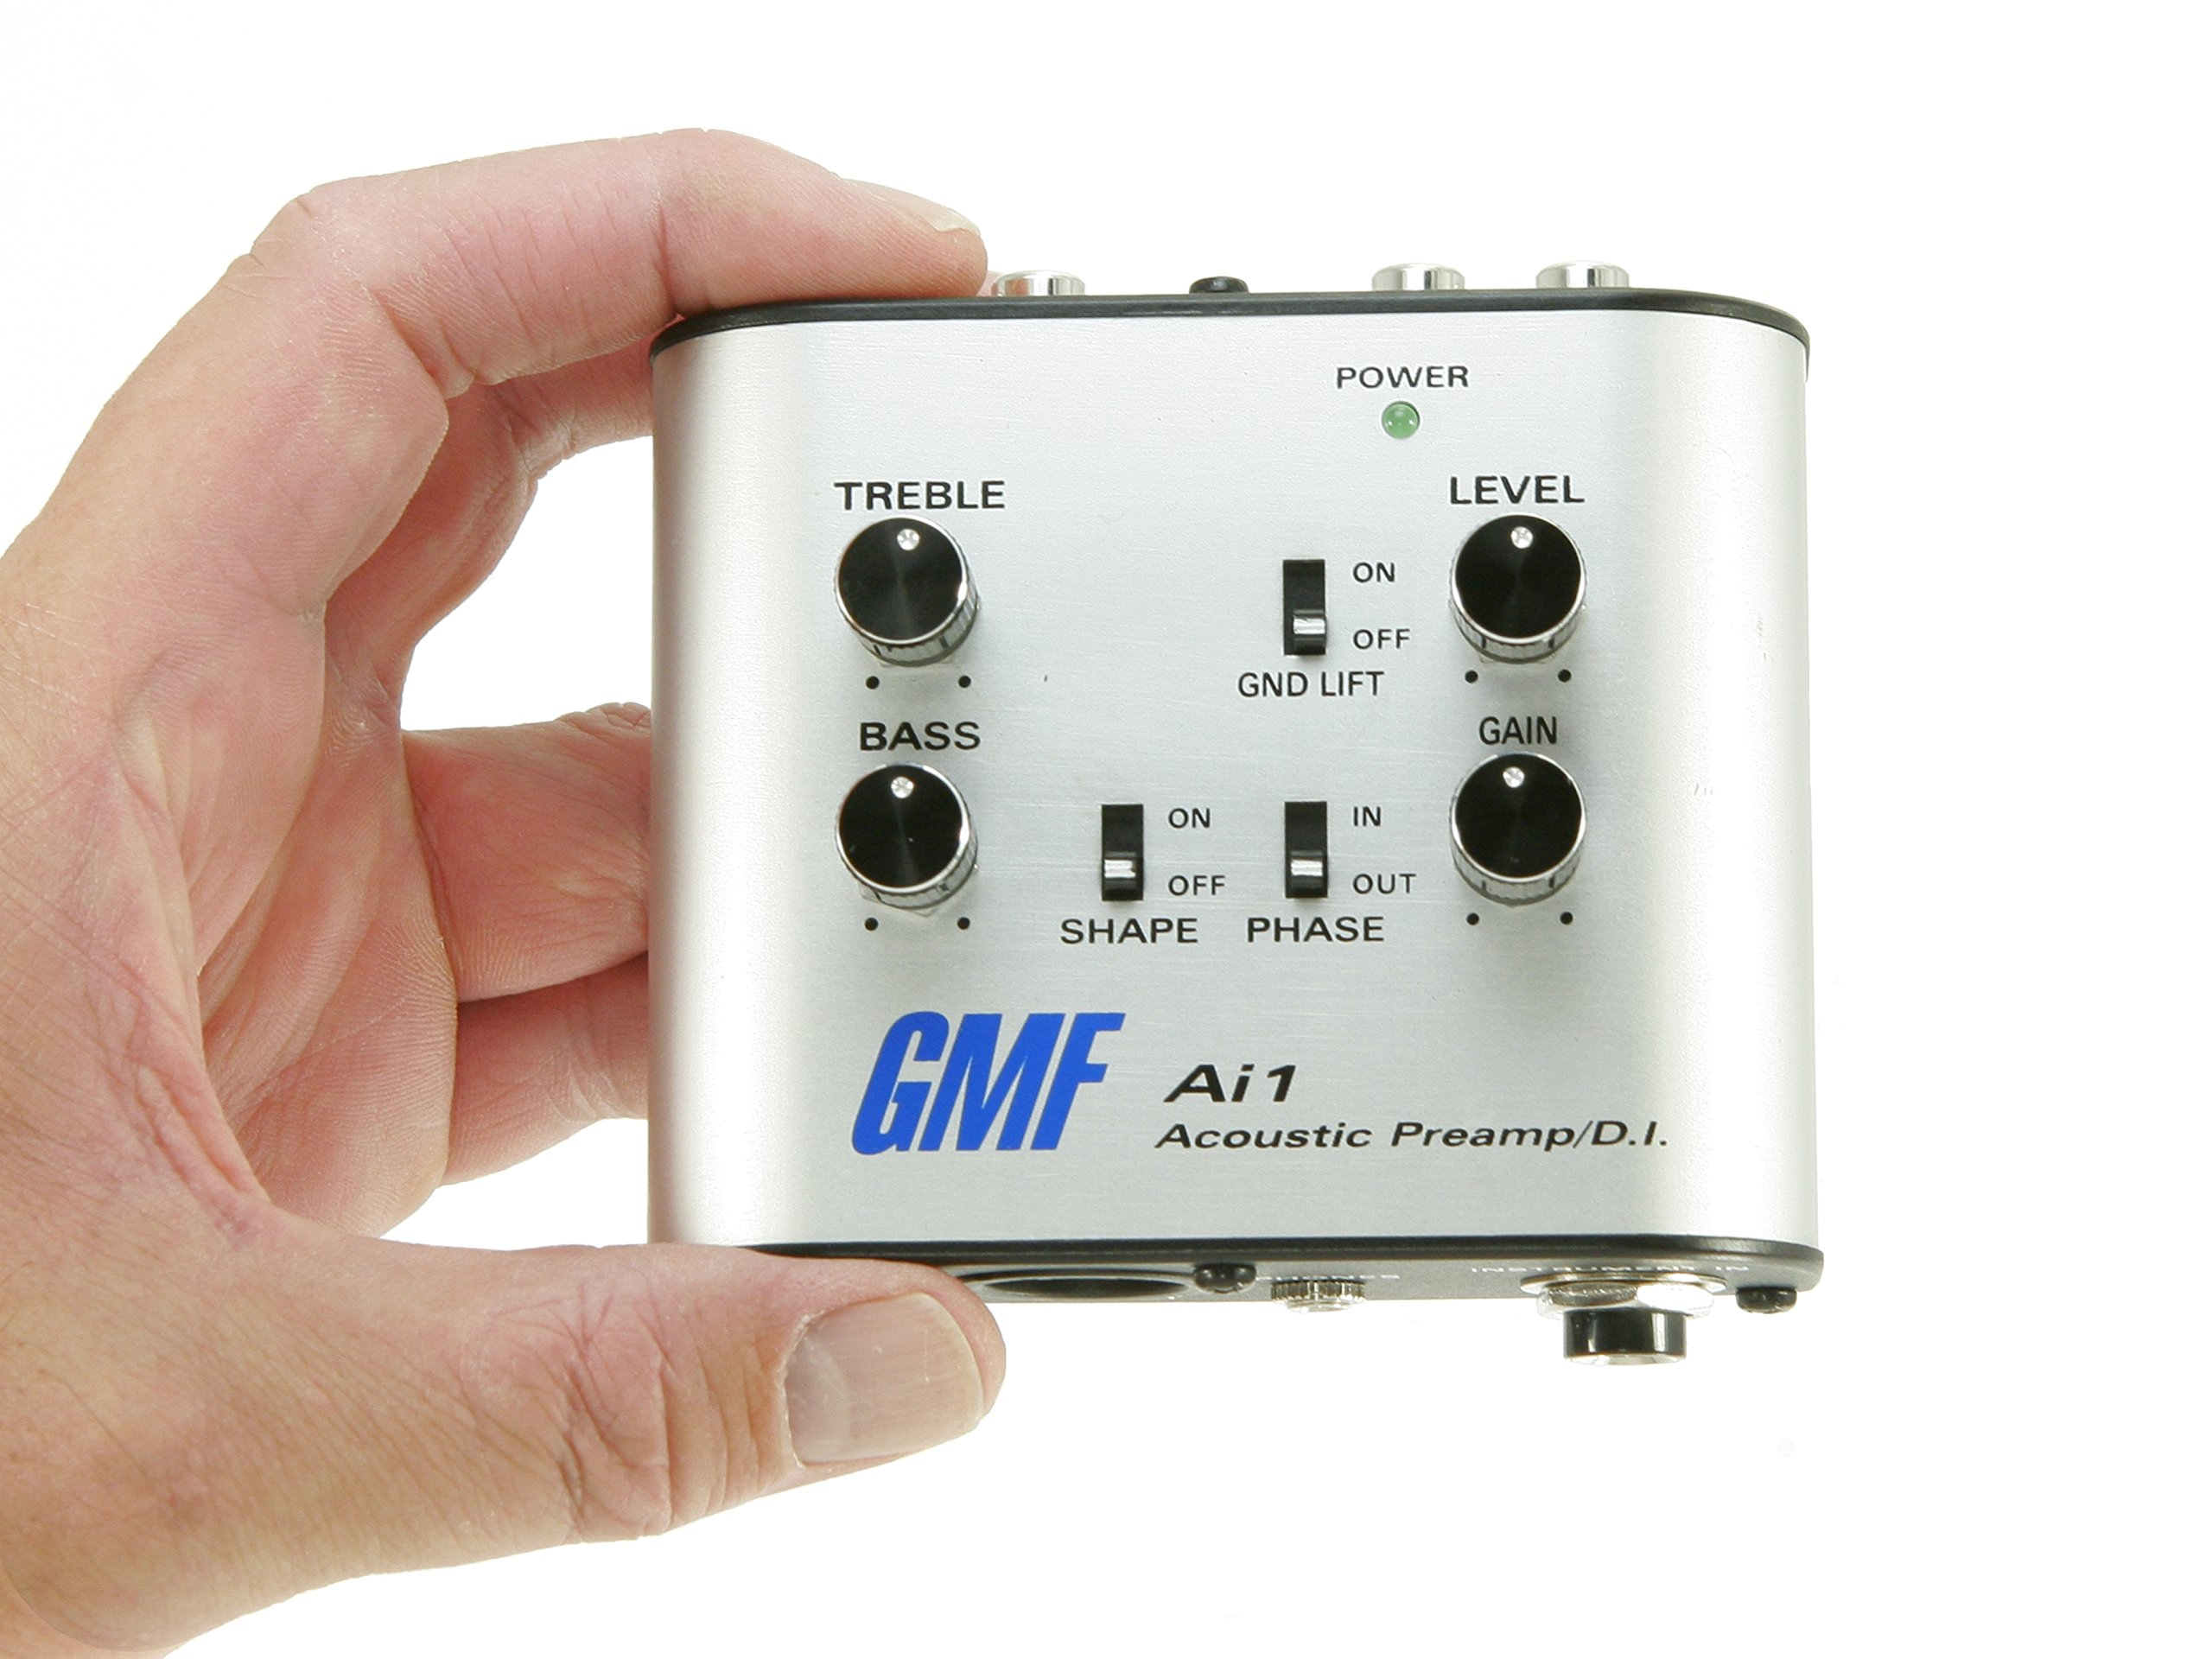 GMF Ai1 Acoustic Preamp and D.I. - Direct Box For Guitar and Other Acoustic Instruments - 3in1 Analog DI Box, Direct To Amp Preamp and EQ, Headphone Amp by GMF